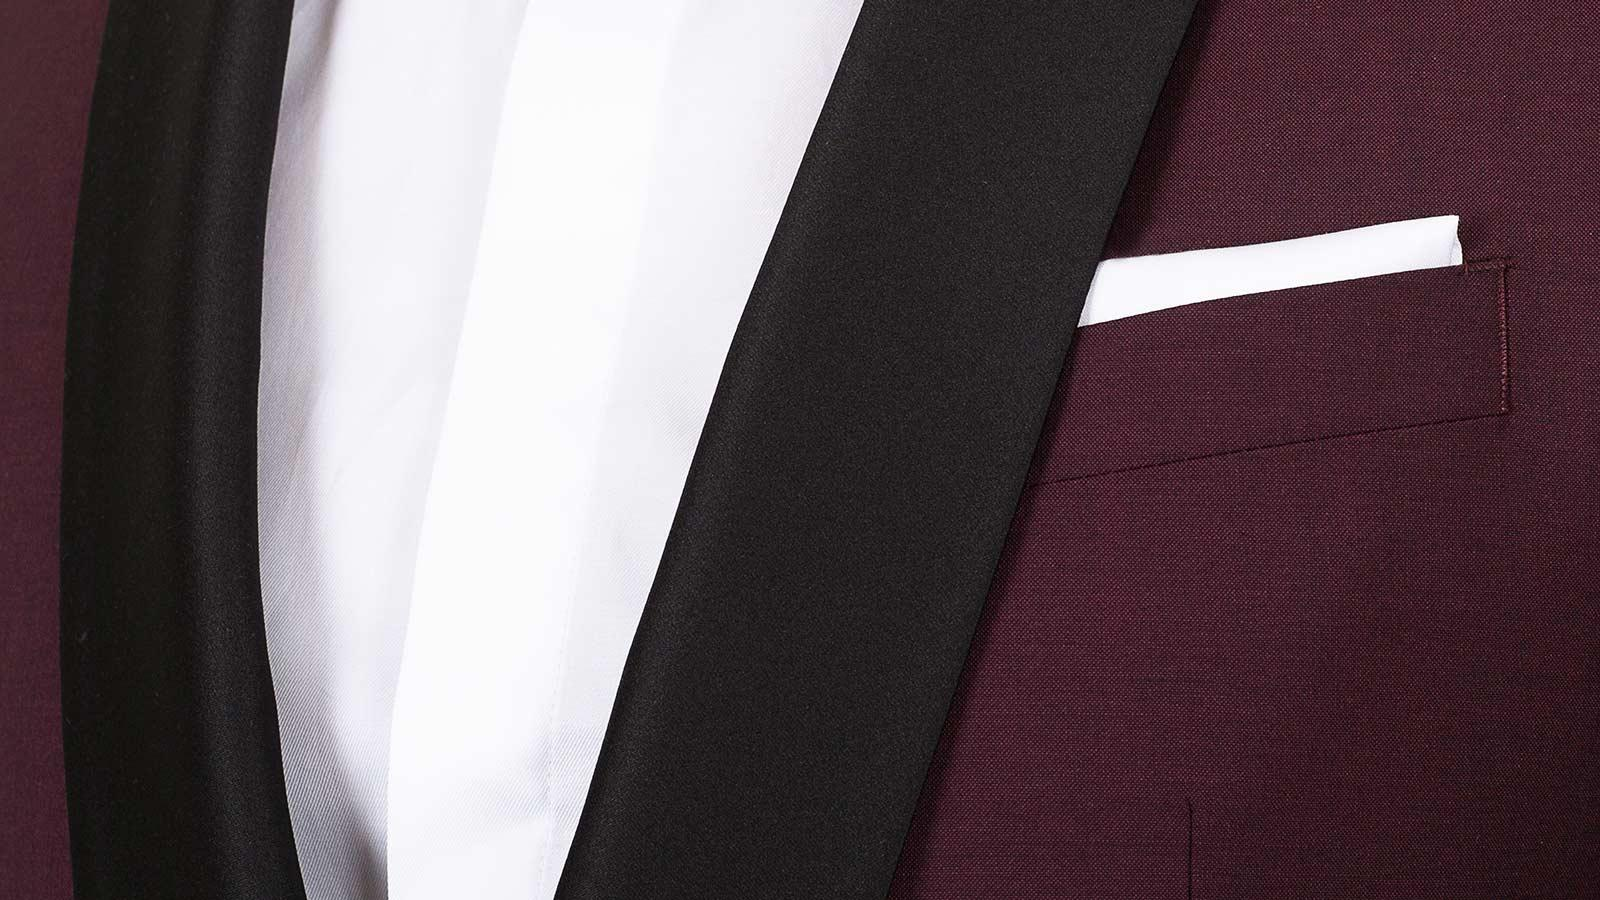 Burgundy Wool & Mohair Dinner Suit - slider image 1